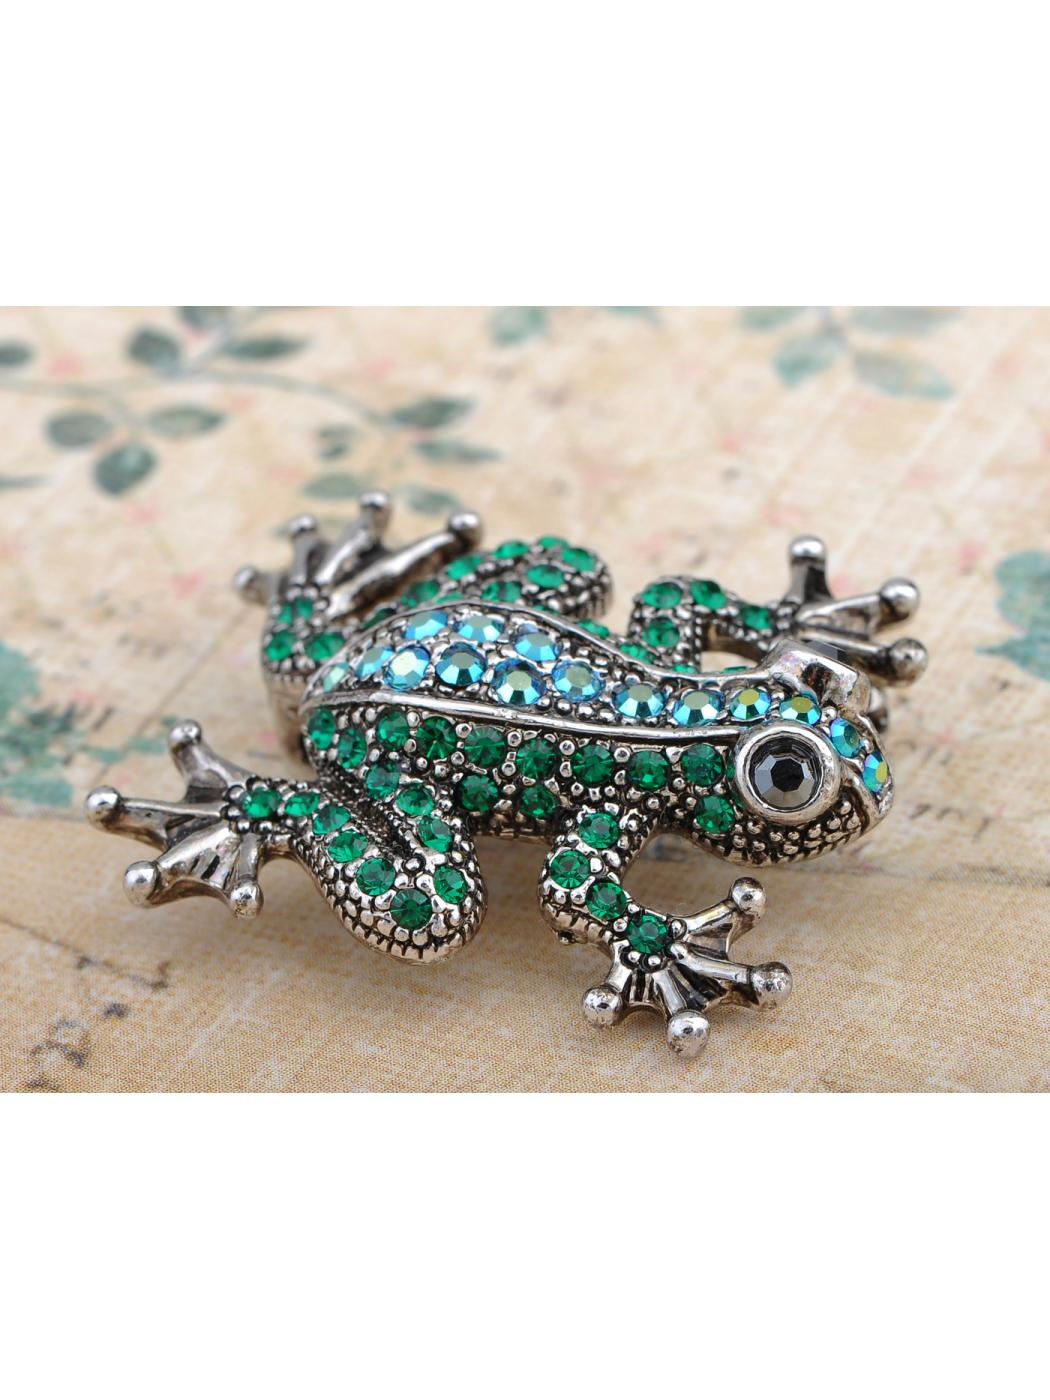 Emerald Green Crystal Rhinestone Poison Water Frog Toad Silver Tone Pin Brooch by